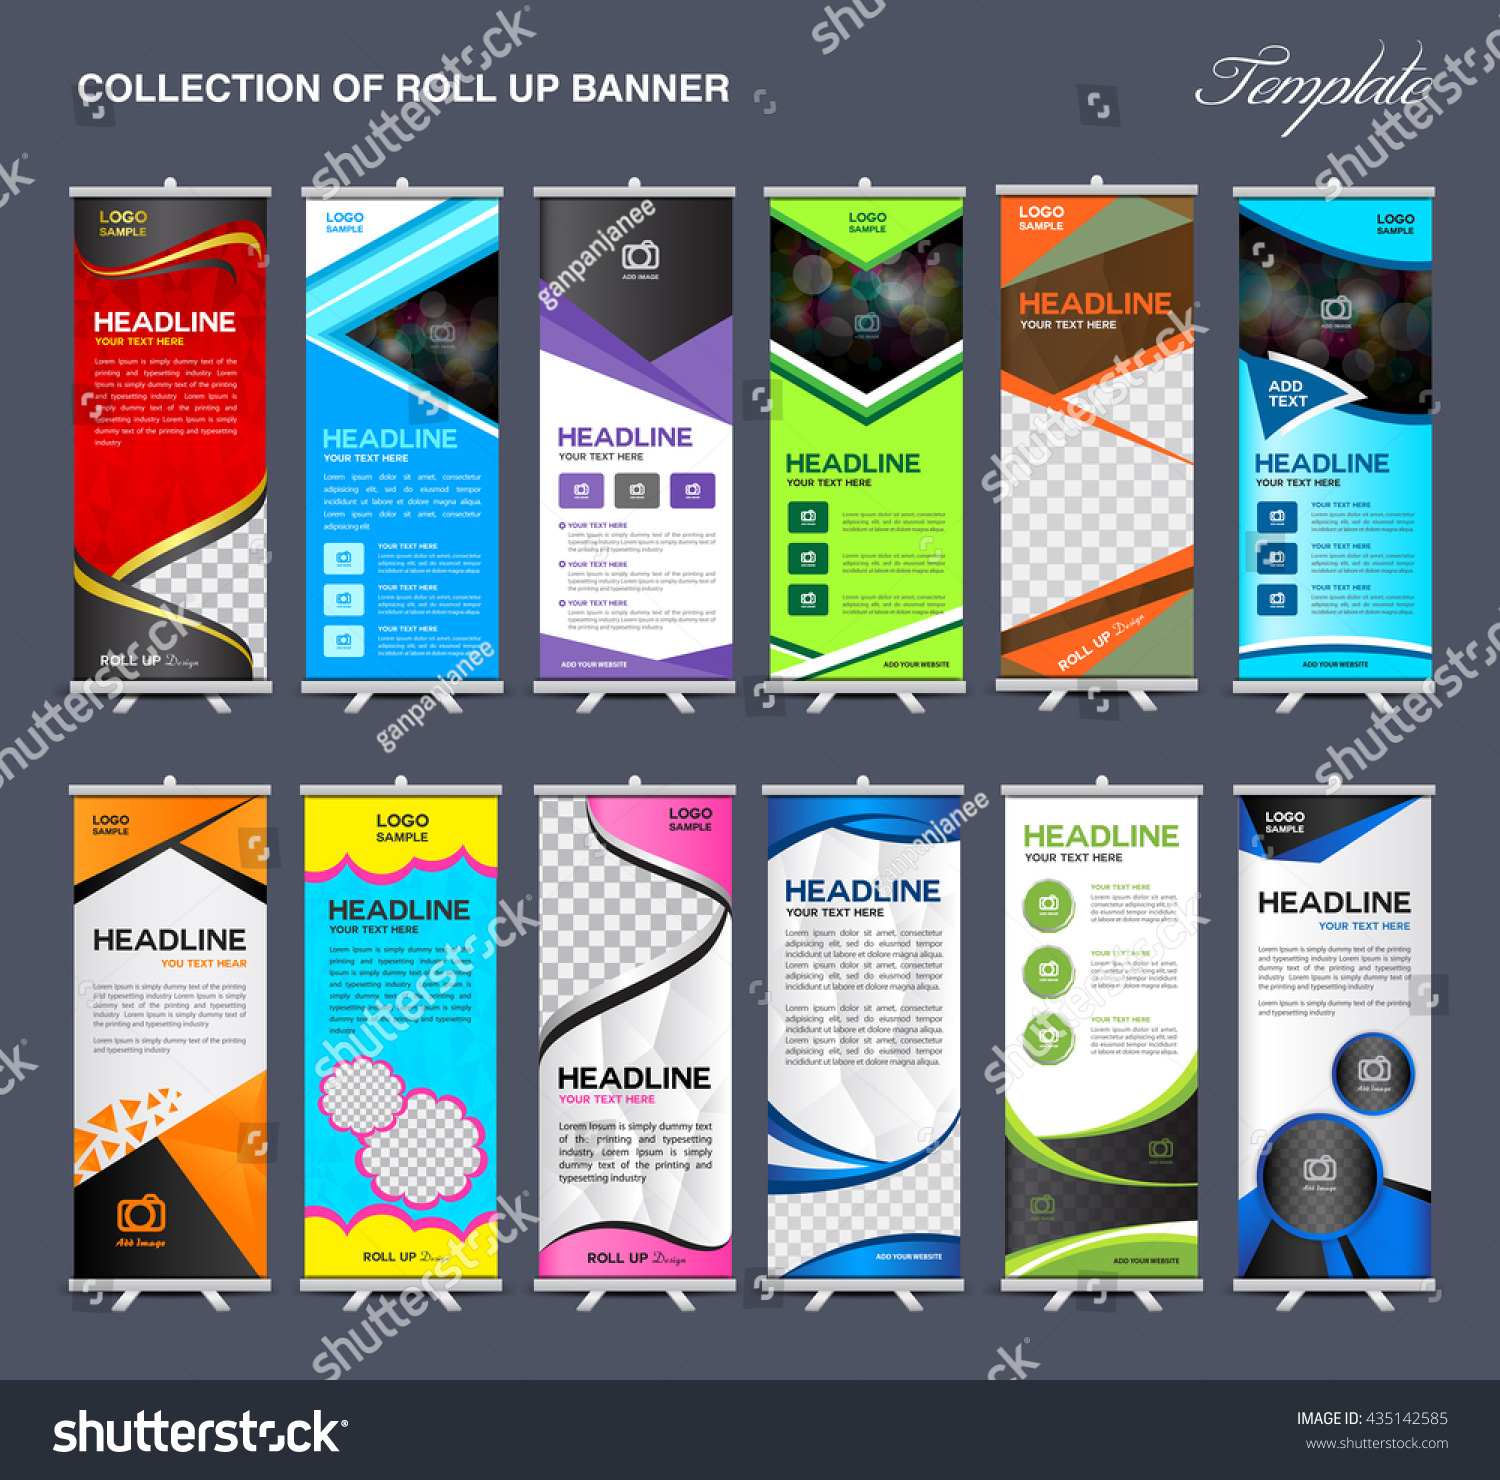 collection roll banner design stand template stock vector collection of roll up banner design stand template flyers design advertisement display layout